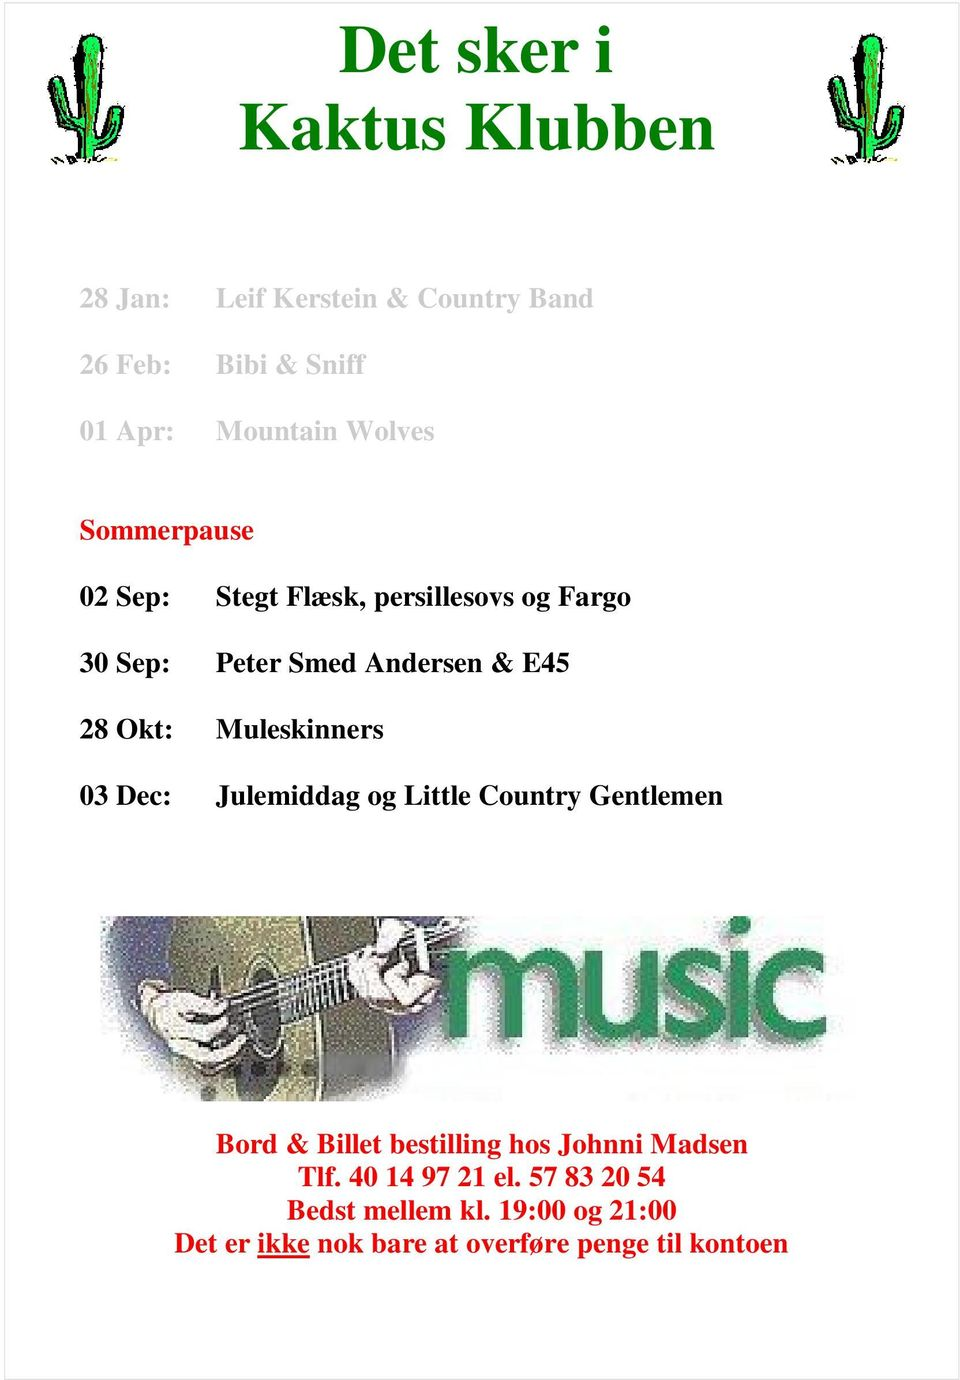 Muleskinners 03 Dec: Julemiddag og Little Country Gentlemen Bord & Billet bestilling hos Johnni Madsen